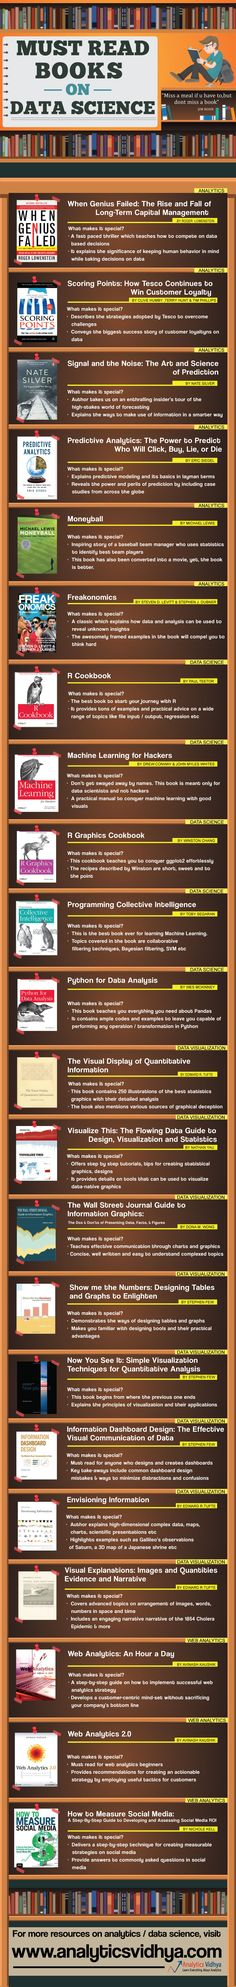 Here is the infographic showing the must read books in analytics / data science / web analytics / data visualization to learn more for all analytics readers and learners. Data Science, Science Books, Life Science, Computer Programming, Computer Science, Programming Languages, Big Data, Social Media Measurement, Web Analytics